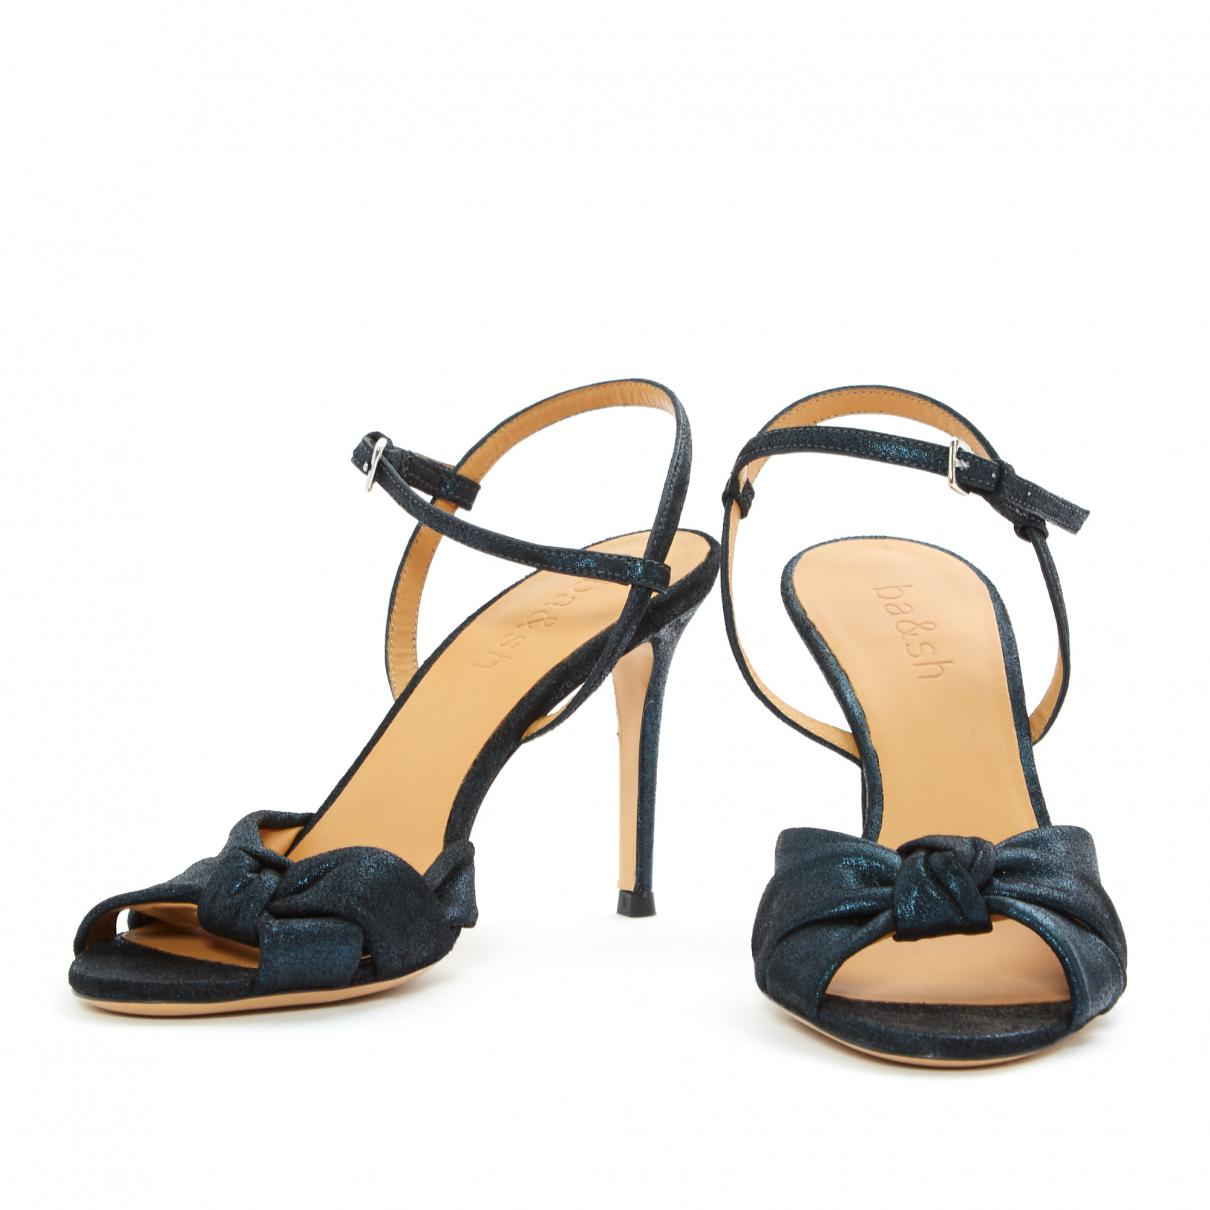 Pre-owned - Leather sandals BA&SH Hmf6Smm